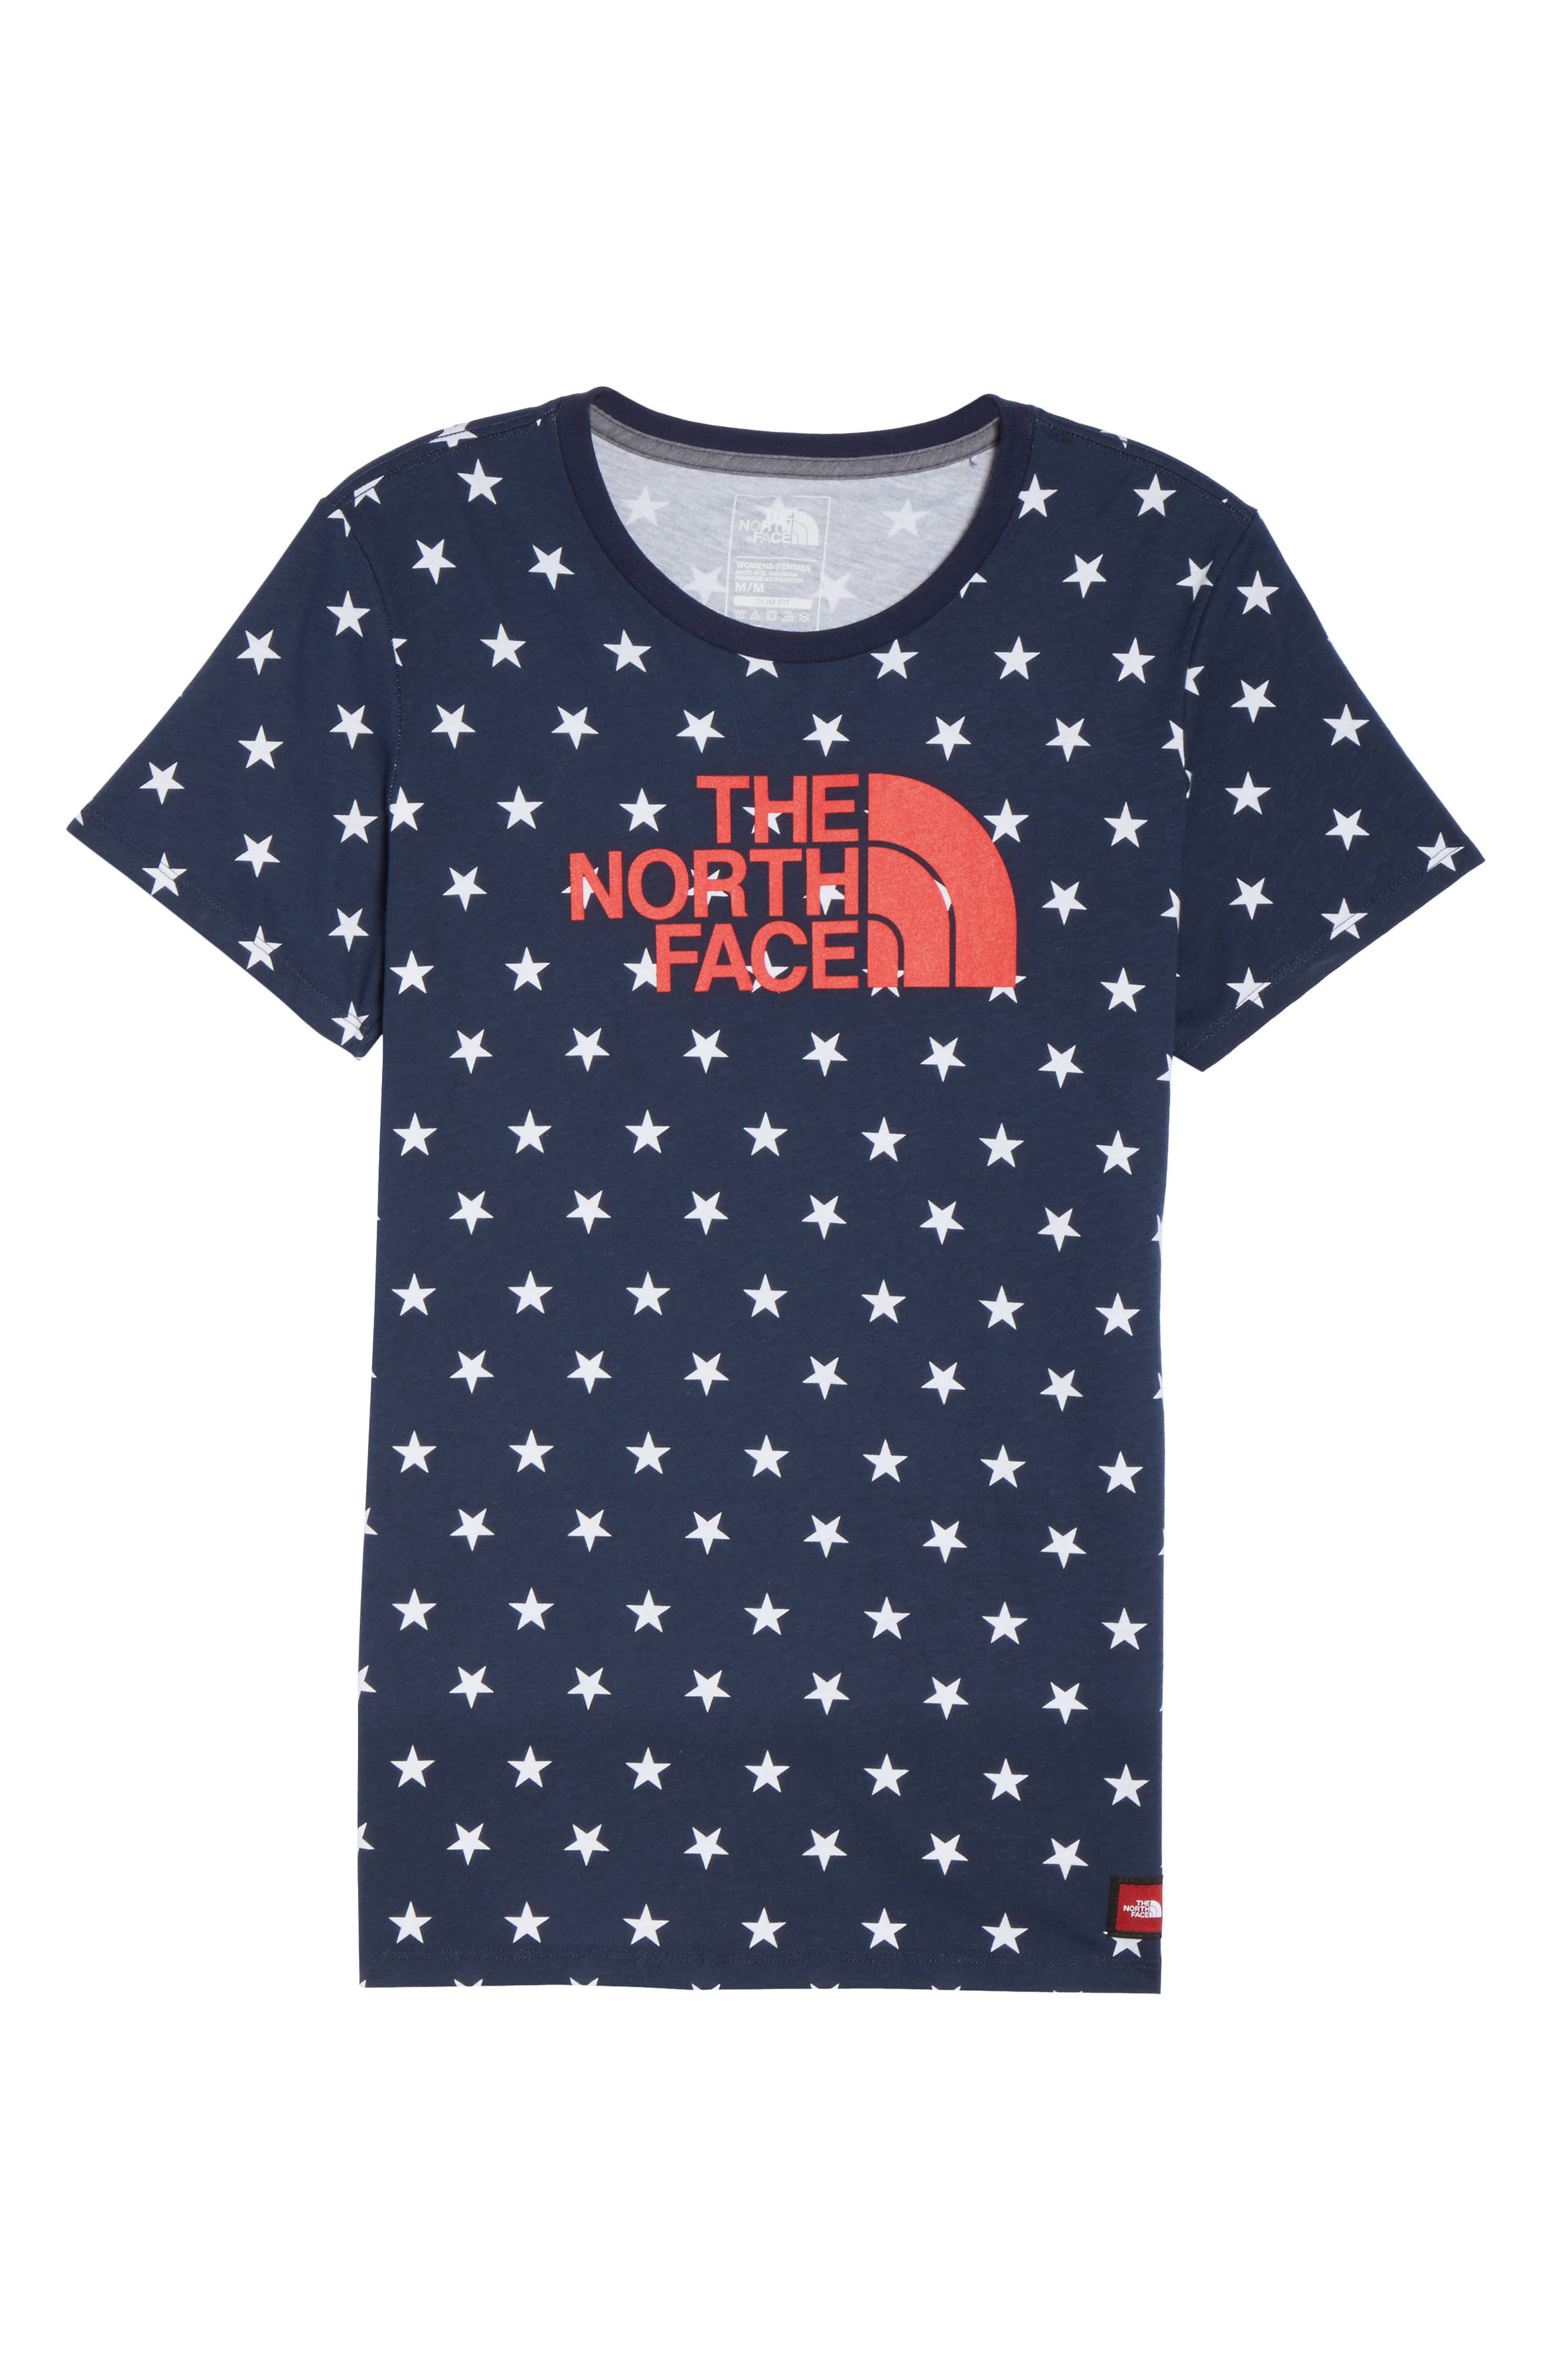 International Collection Tee,                             Alternate thumbnail 7, color,                             COSMIC BLUE STAR PRINT